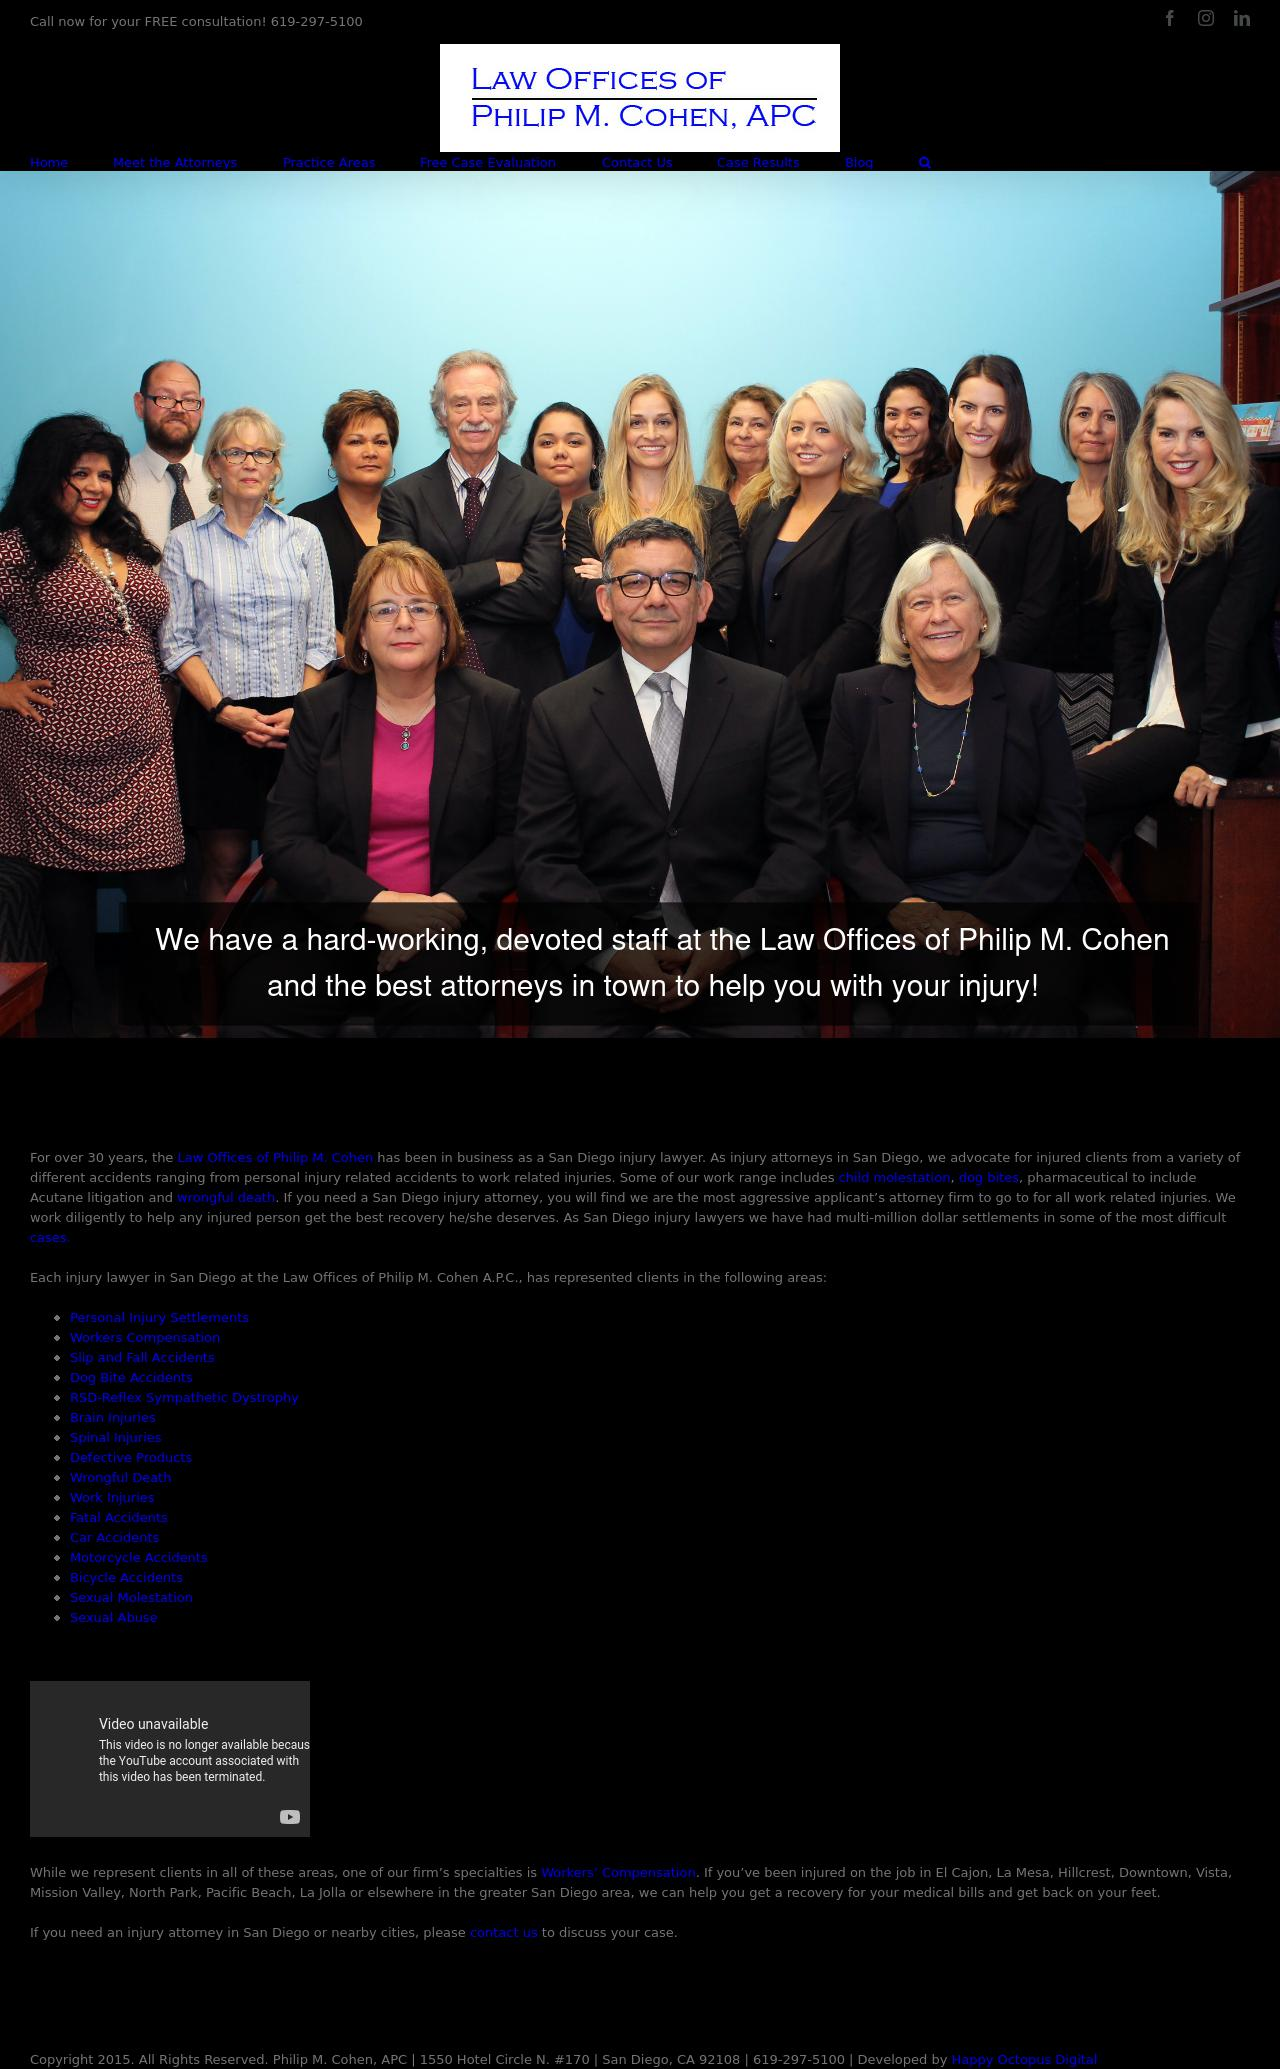 Law Offices of Philip M. Cohen, APC - San Diego CA Lawyers